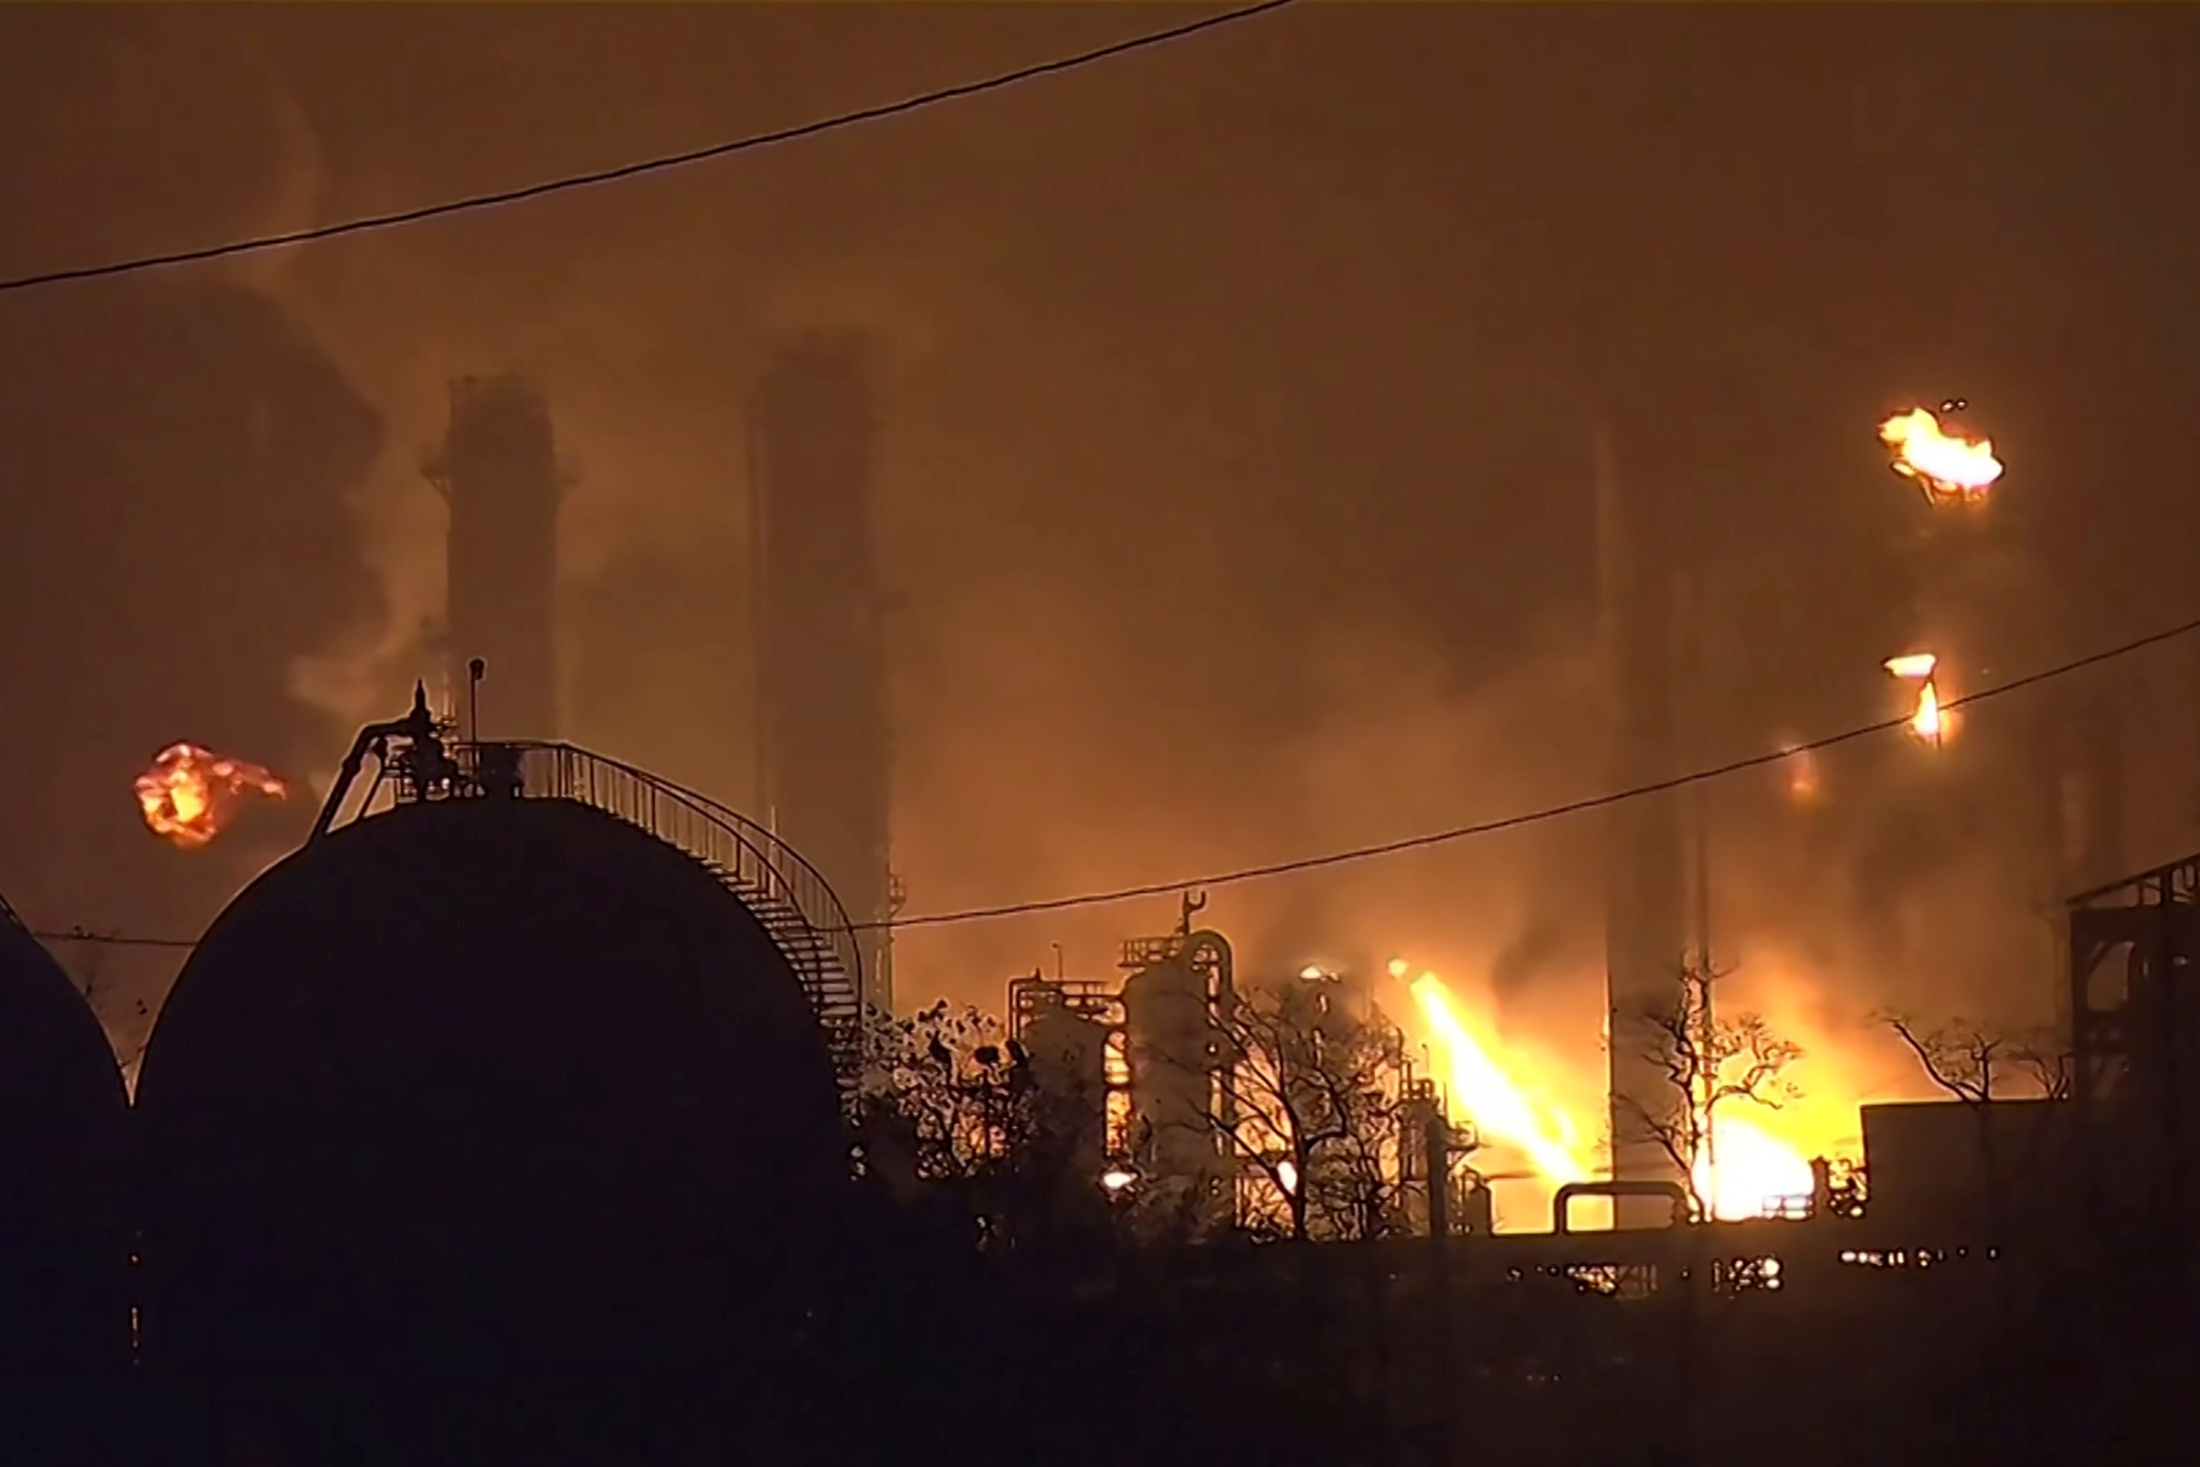 Flames rise over a petrochemical plant after an explosion in a still image from video in Port Neches, Texas, U.S. November 27, 2019. 12NewsNow.com via REUTERS.